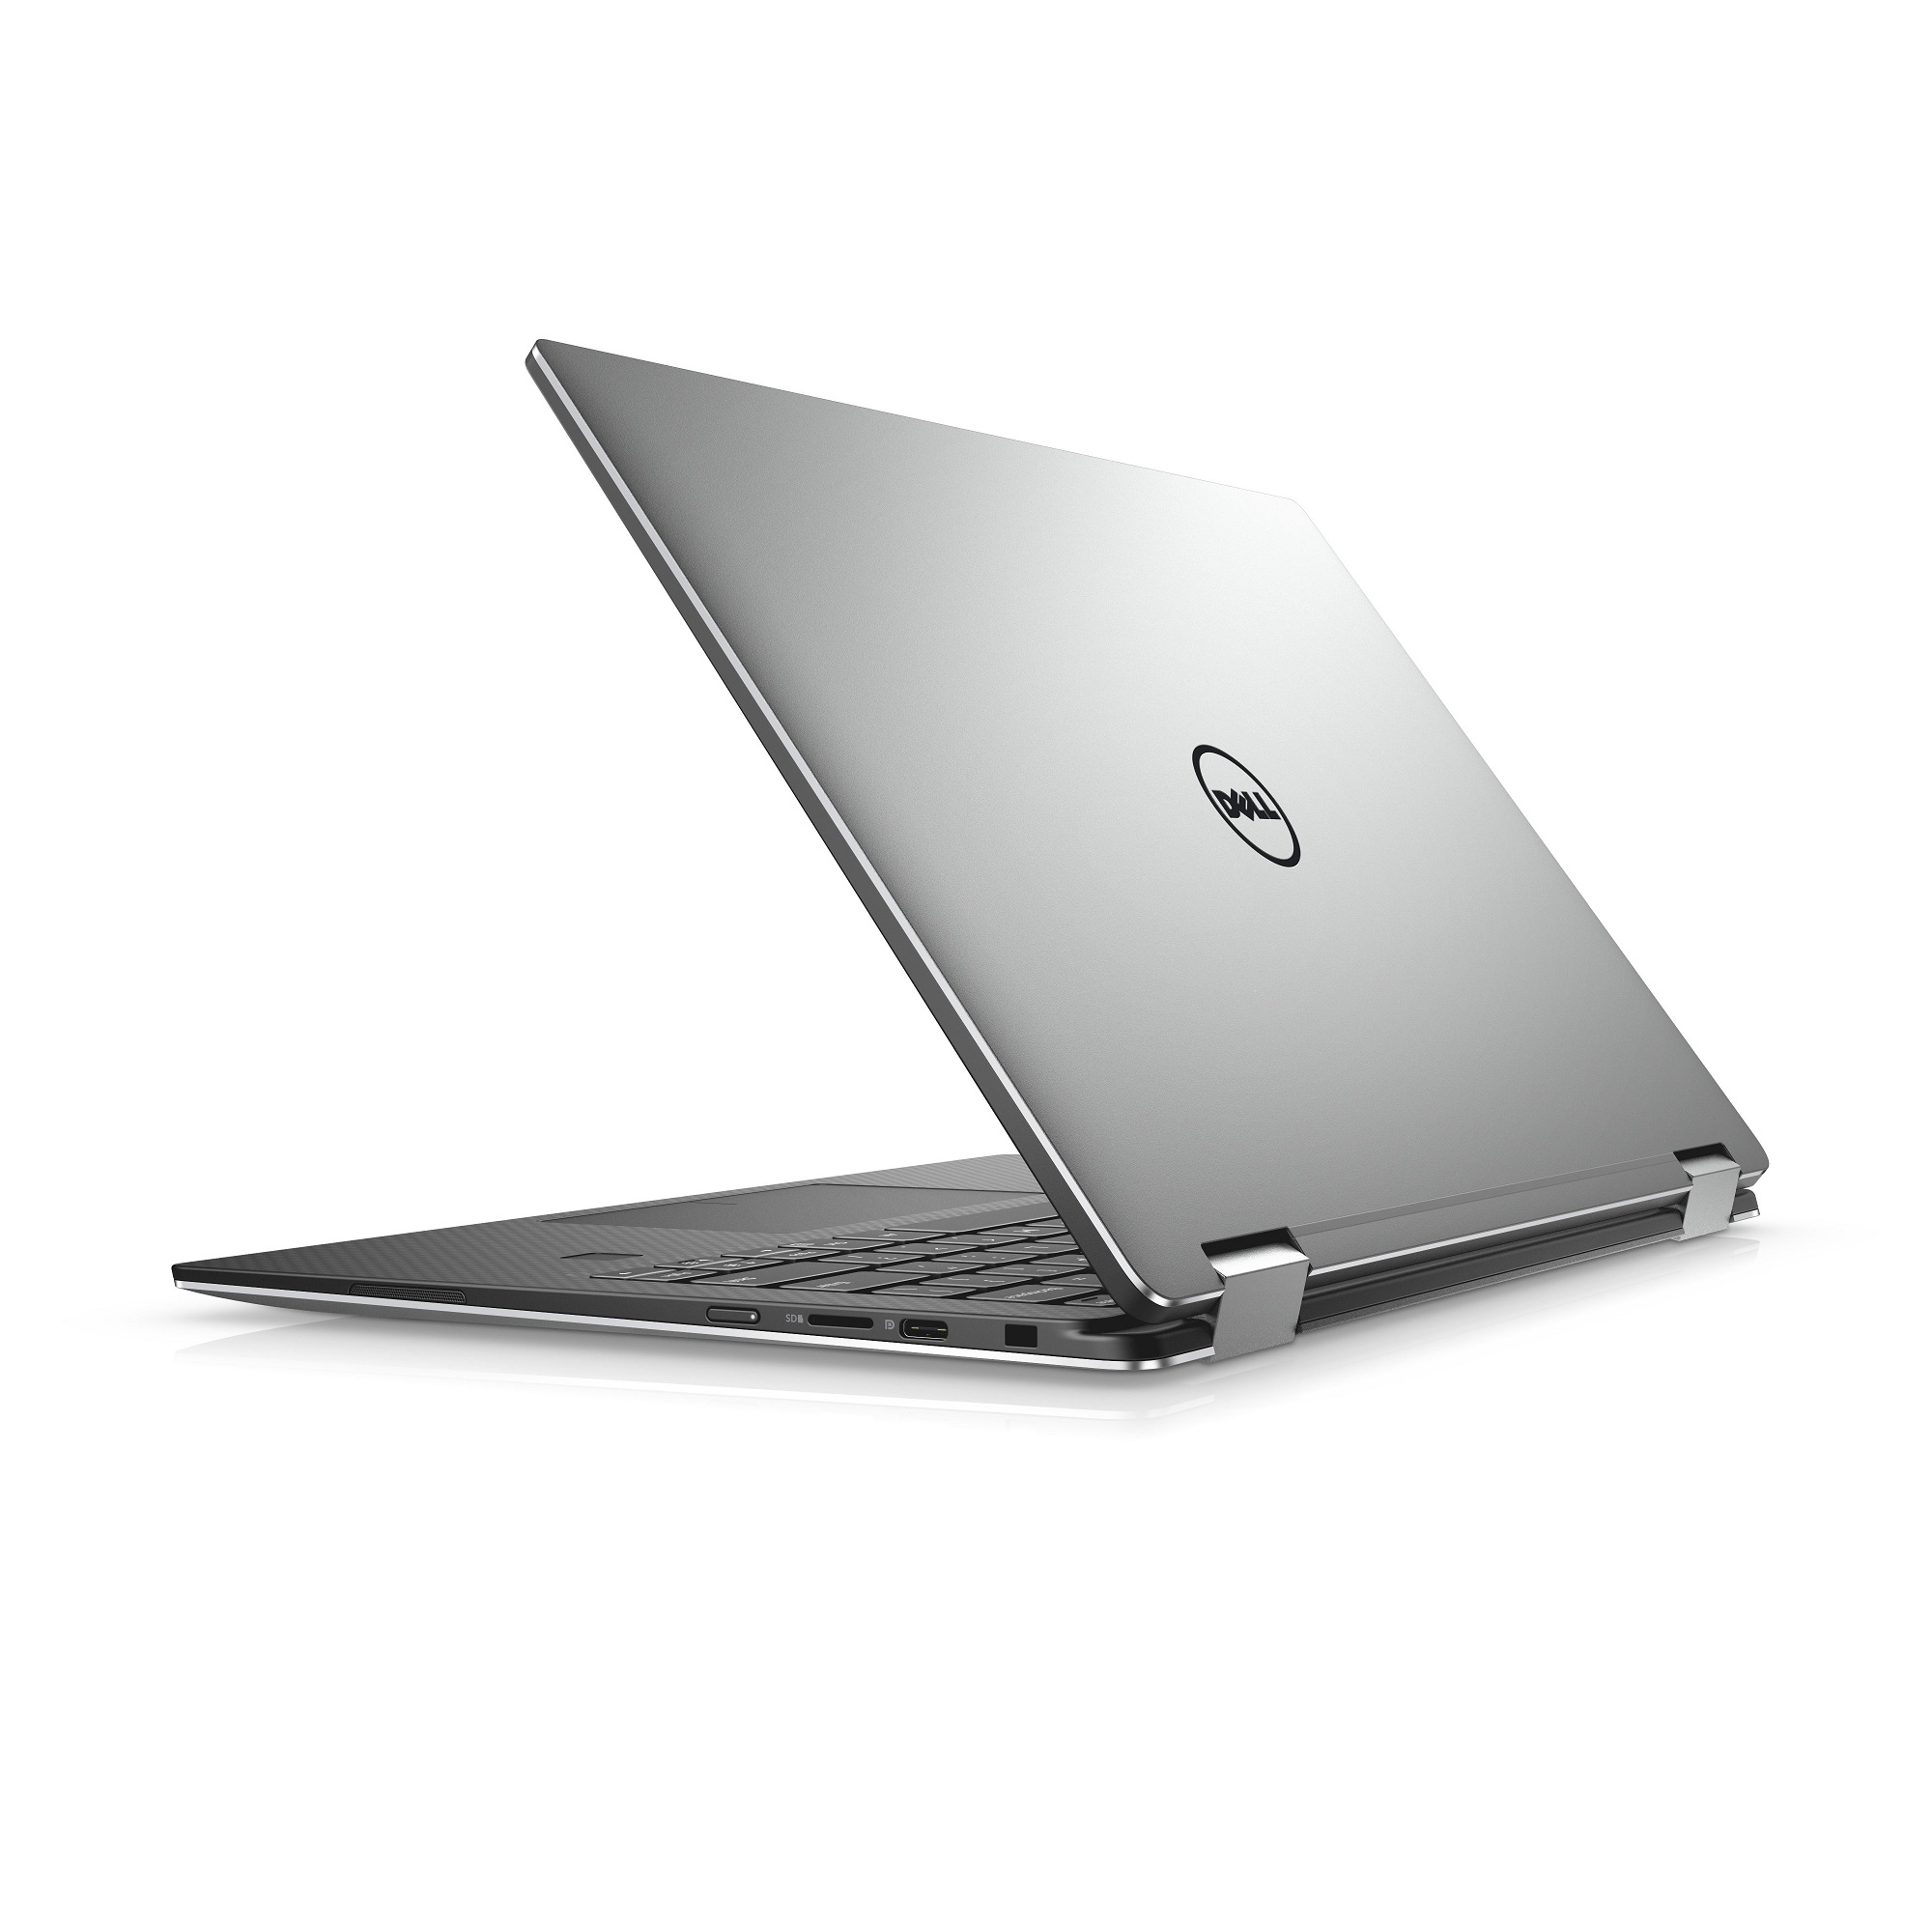 "DELL Ultrabook XPS 13 (9365)/i7-7Y75/8GB/256GB SSD/Intel HD 615/13.3"" FHD Touch/Win 10 MUI/Silver"